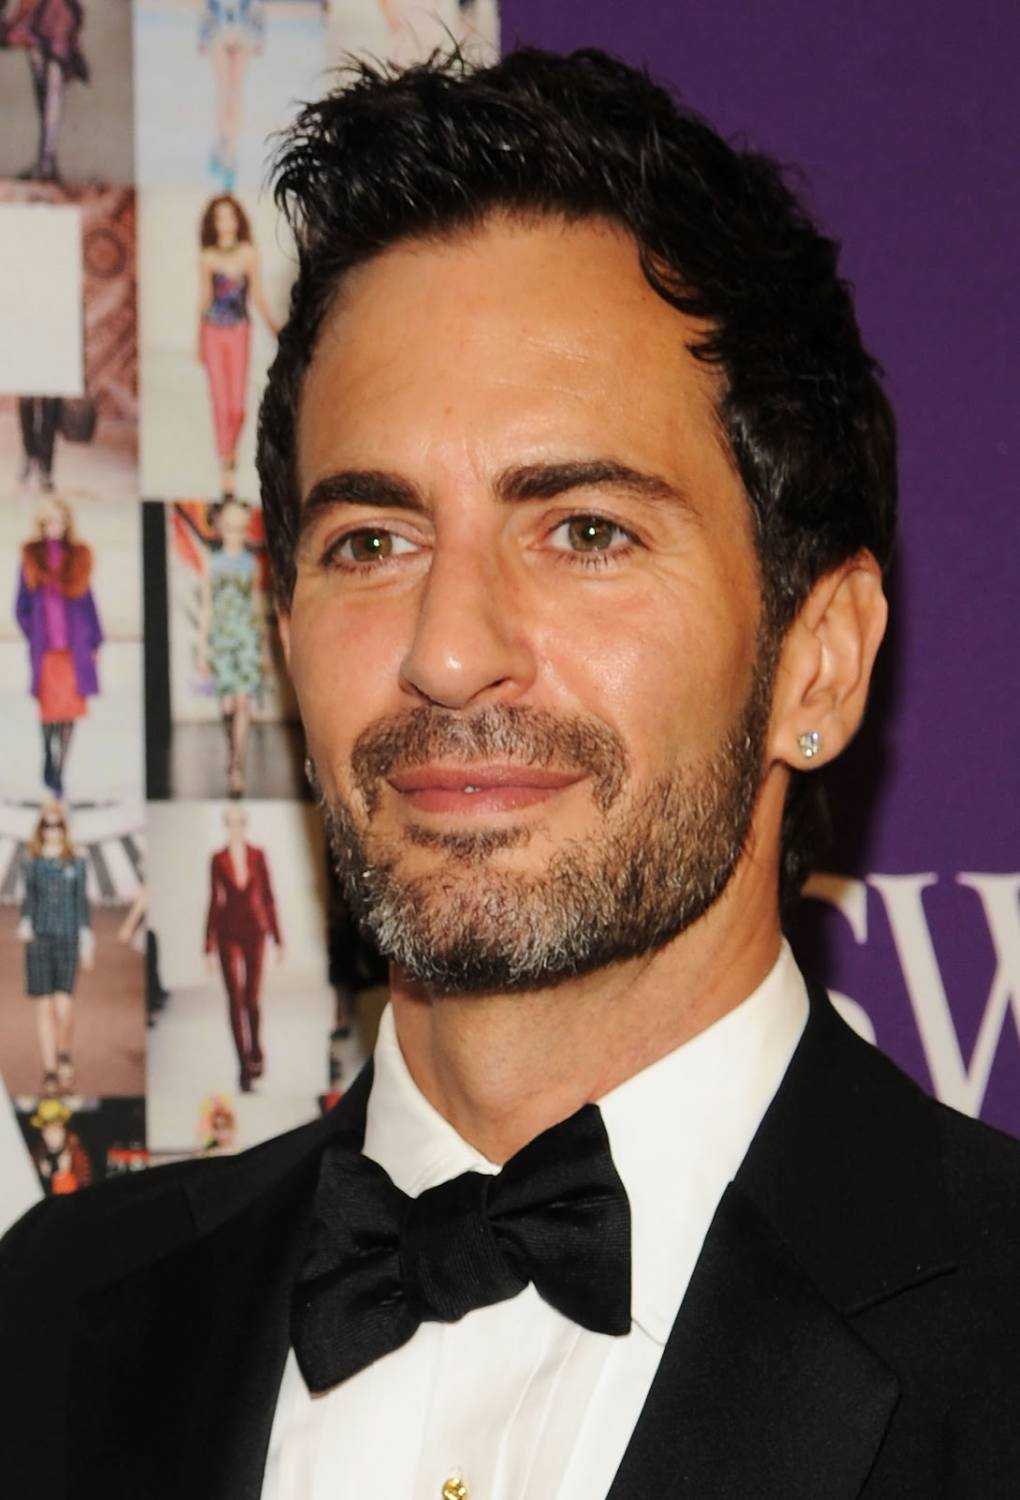 the life and work of the american fashion designer marc jacobs Personality profile of marc jacobs - an american fashion designer who was the freedom is the key to marc's personality marc jacobs with hard work and.